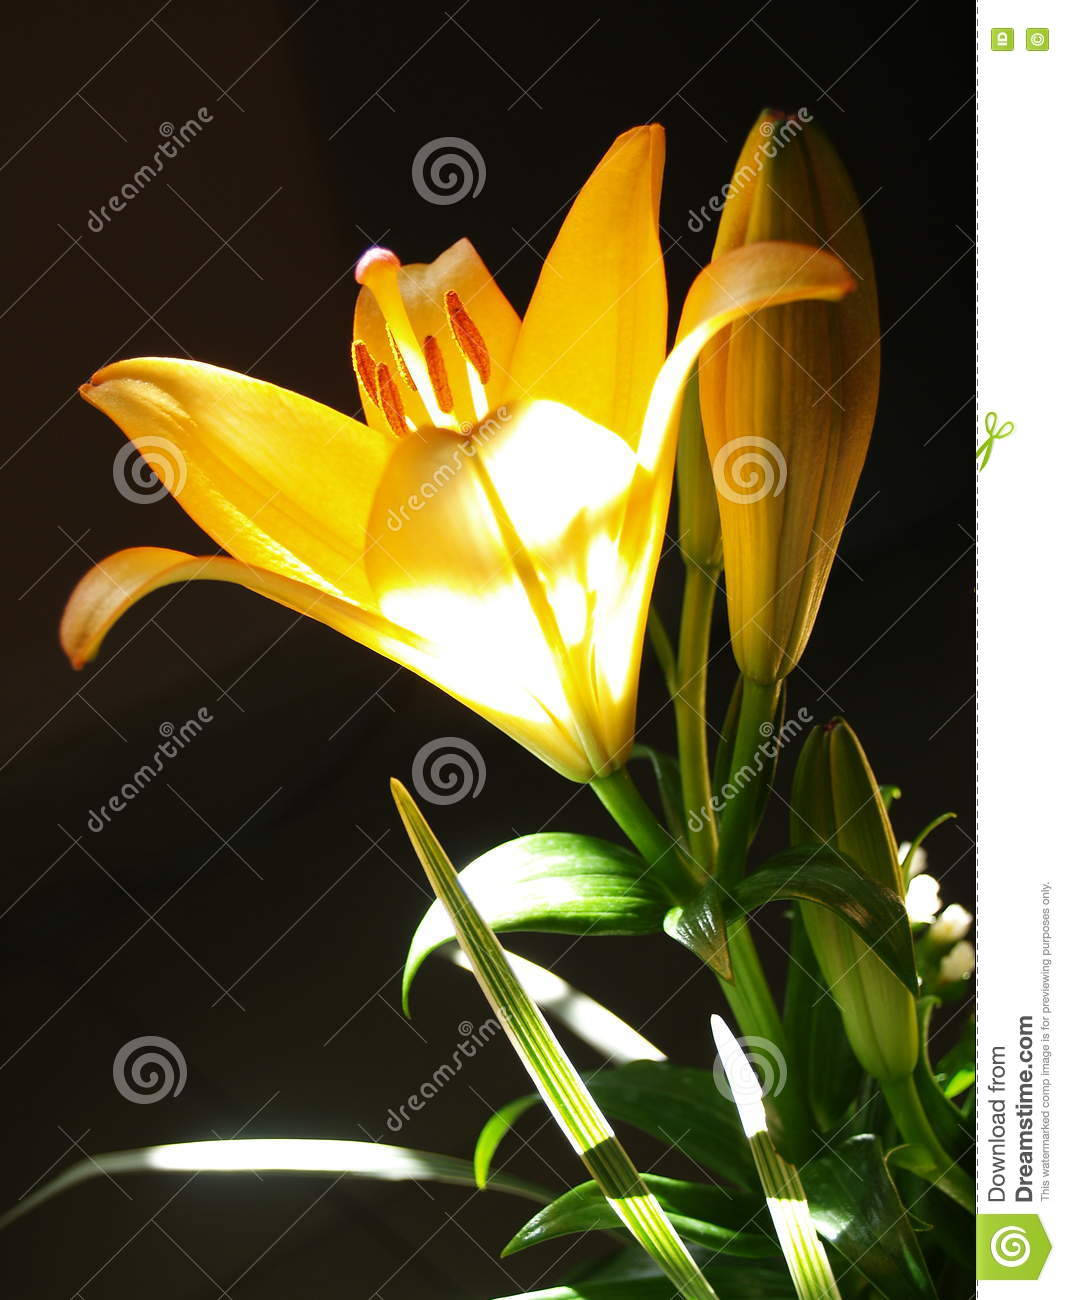 Zephyranthes lily flower common names for species in this genus zephyranthes lily flower common names for species in this genus include fairy lily rainflower zephyr lily magic lily atamasco lily madonna lily and izmirmasajfo